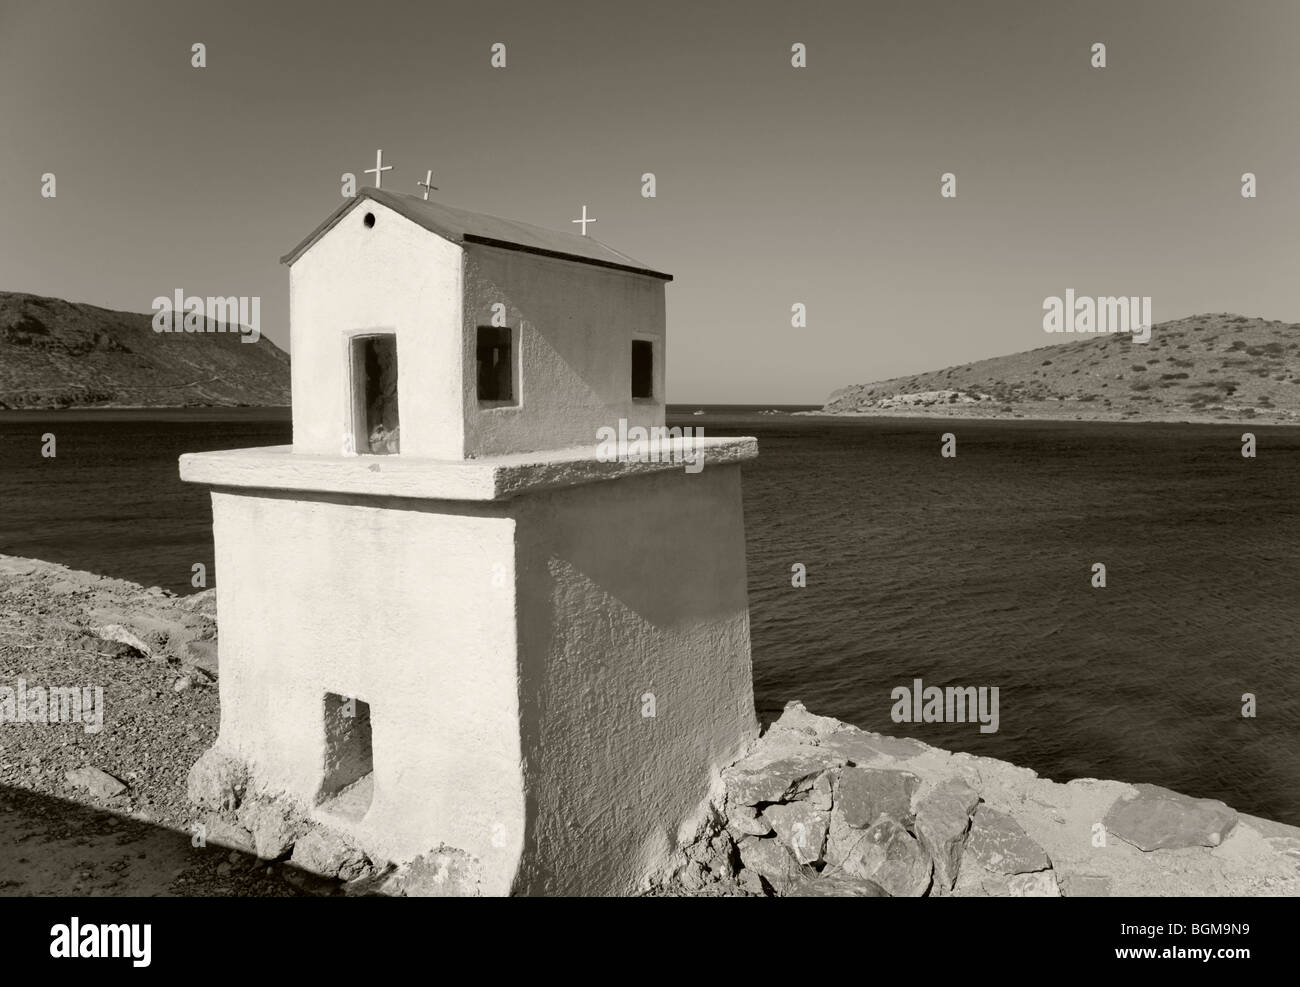 Little house statue along the road in  Mediterranean landscape overlooking the ocean,. Stock Photo